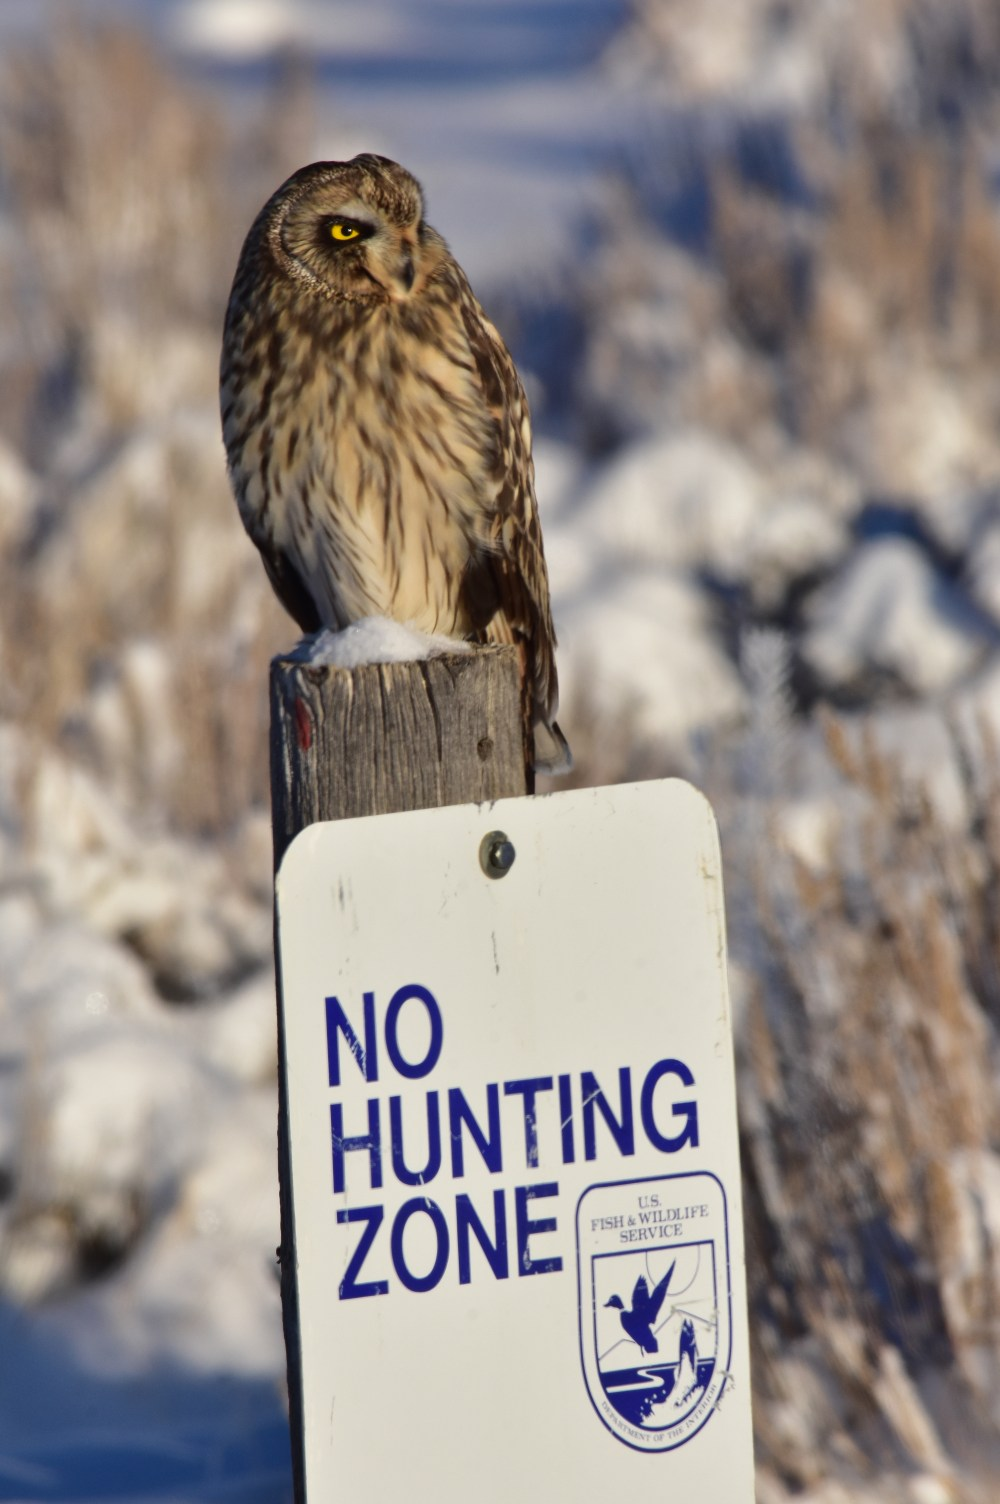 By his expression, I'm pretty sure that this Short-eared Owl isn't going to follow the instructions. Photo taken 1/5/17 on the Seedskadee National Wildlife Refuge, and then posted on Flickr by the US Fish & Wildlife Service. Photo by Tom Koerner/USFWS. Posted on 1/9/17.